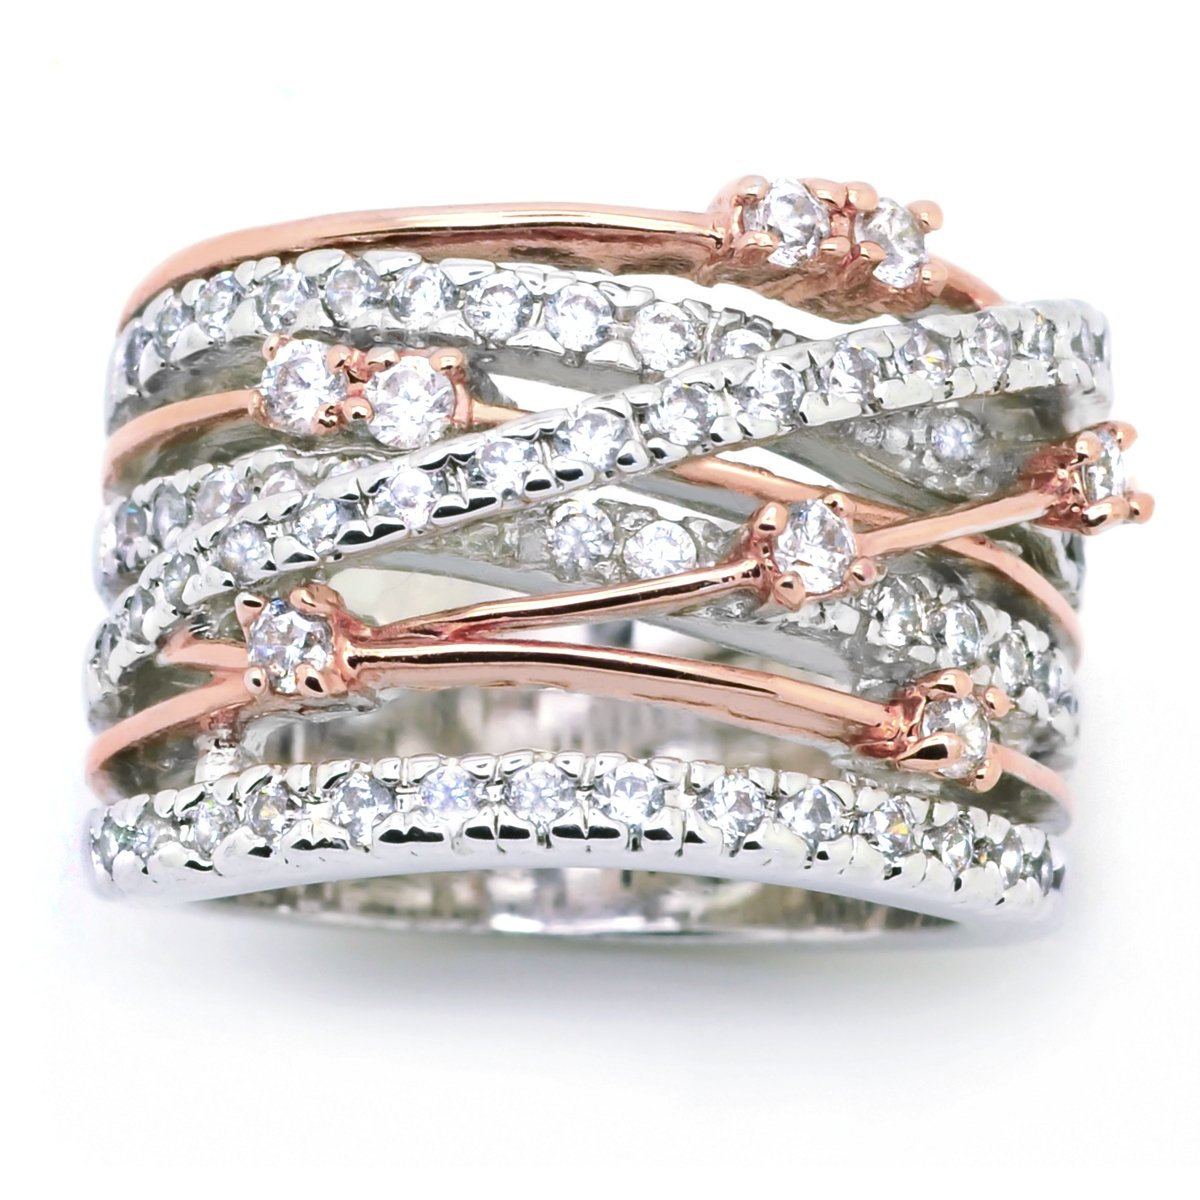 Sparkly Bride CZ Statement Ring Crossover Two-tone Rose Gold Plated Wide Band Women Fashion size 8